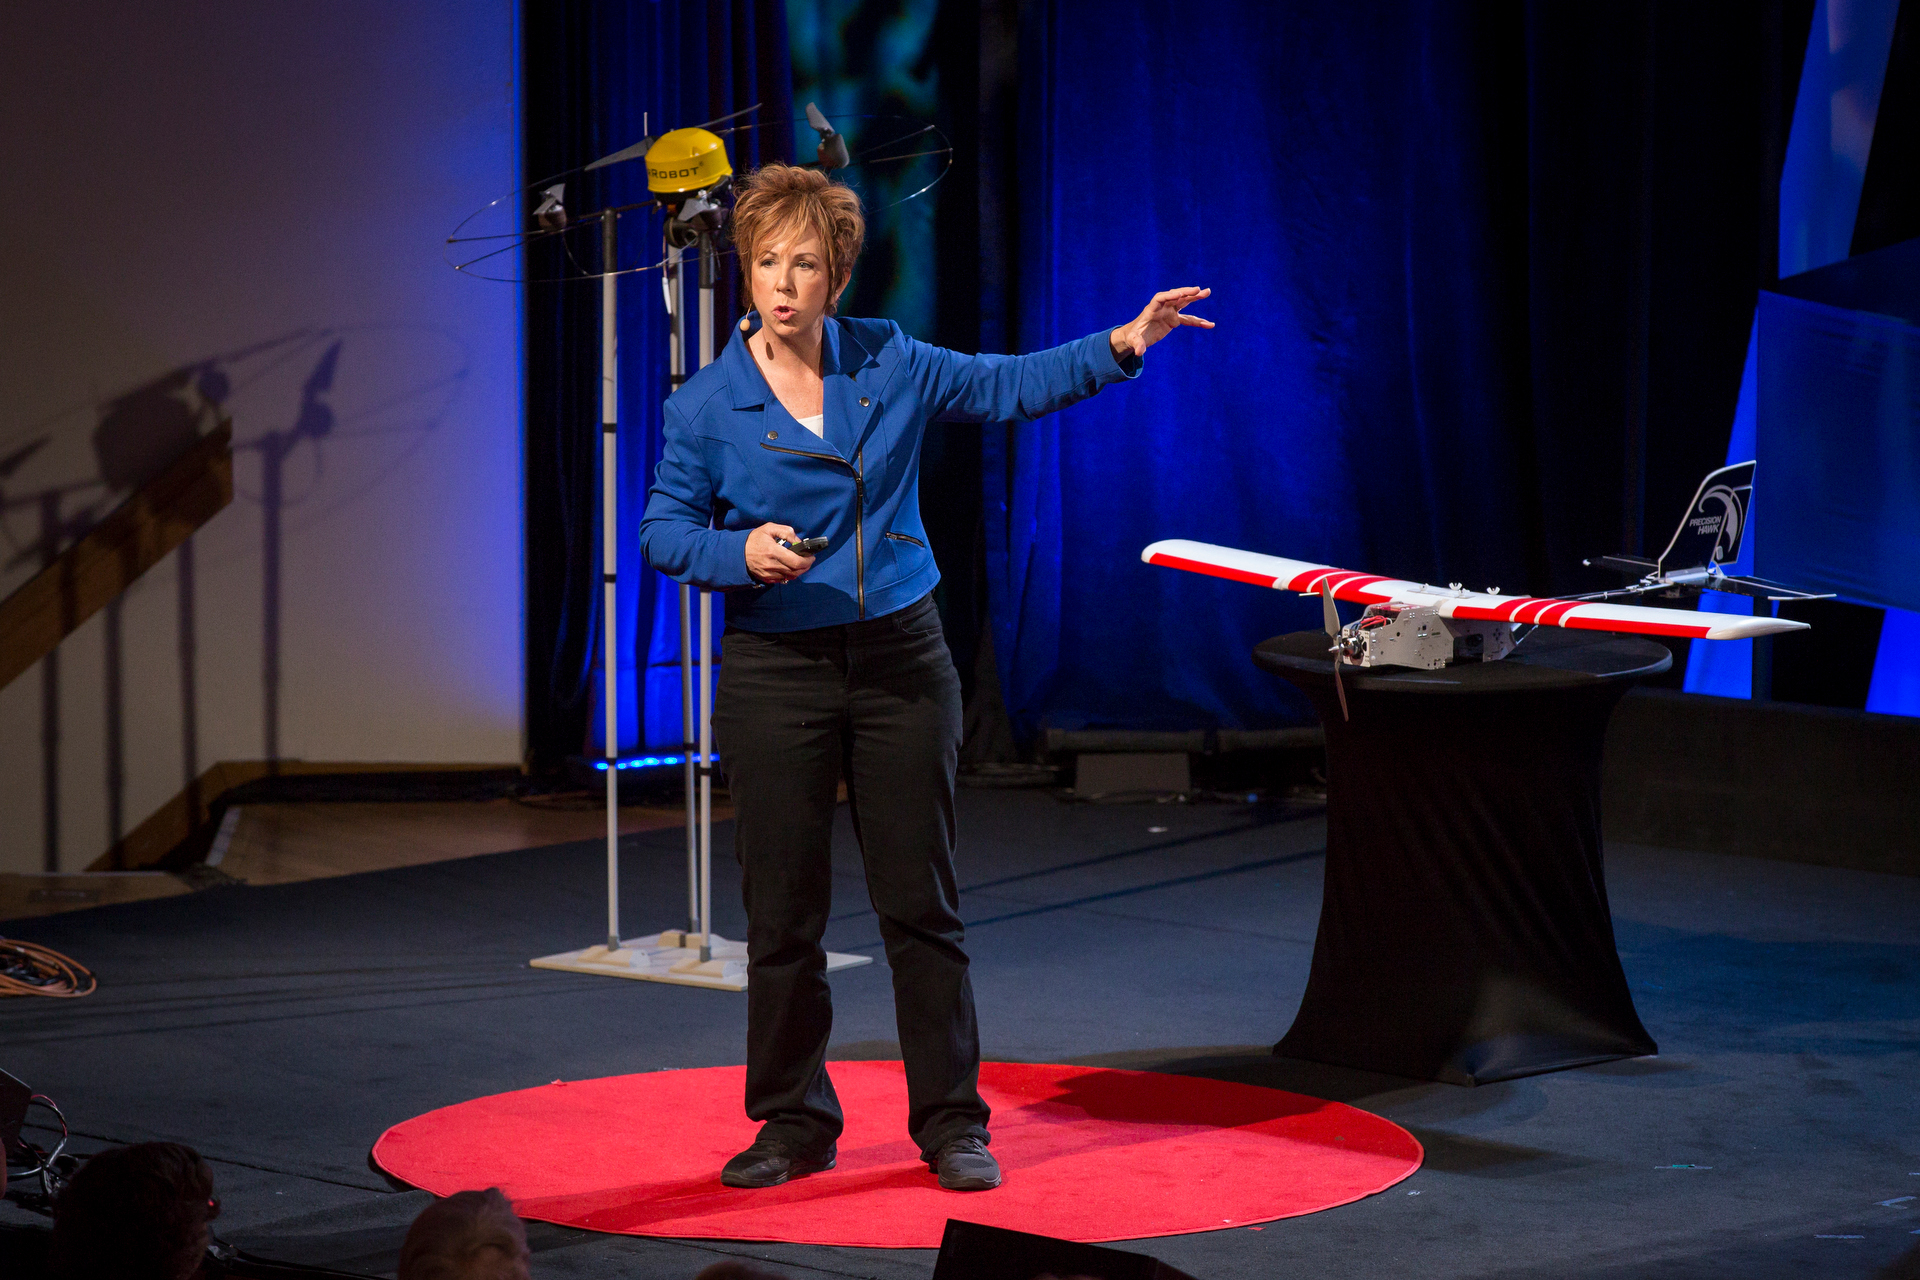 Robin Murphy speaks at TEDWomen2015 - Momentum, Session 1, May 28, 2015, Monterey Conference Center, Monterey, California, USA. Photo: Marla Aufmuth/TED